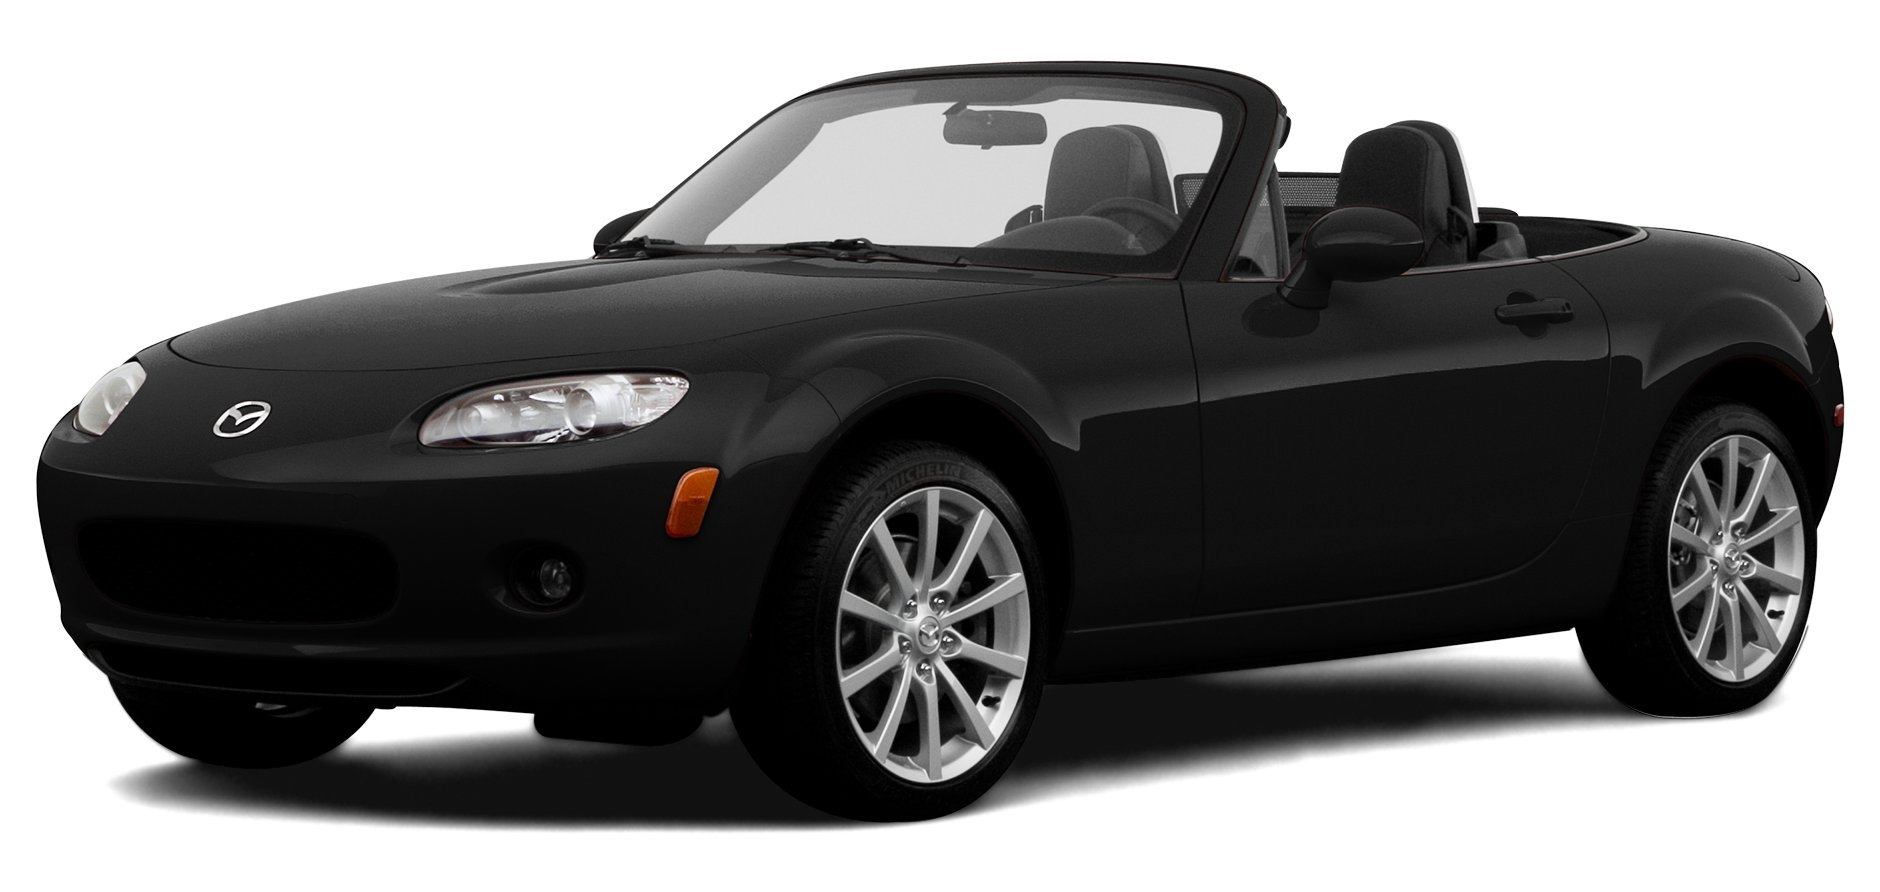 2007 Saturn Sky Reviews Images And Specs Vehicles Mazda 626 2 0 Engine Parts Diagram Free Image For Mx 5 Miata Grand Touring Door Convertible Manual Transmission